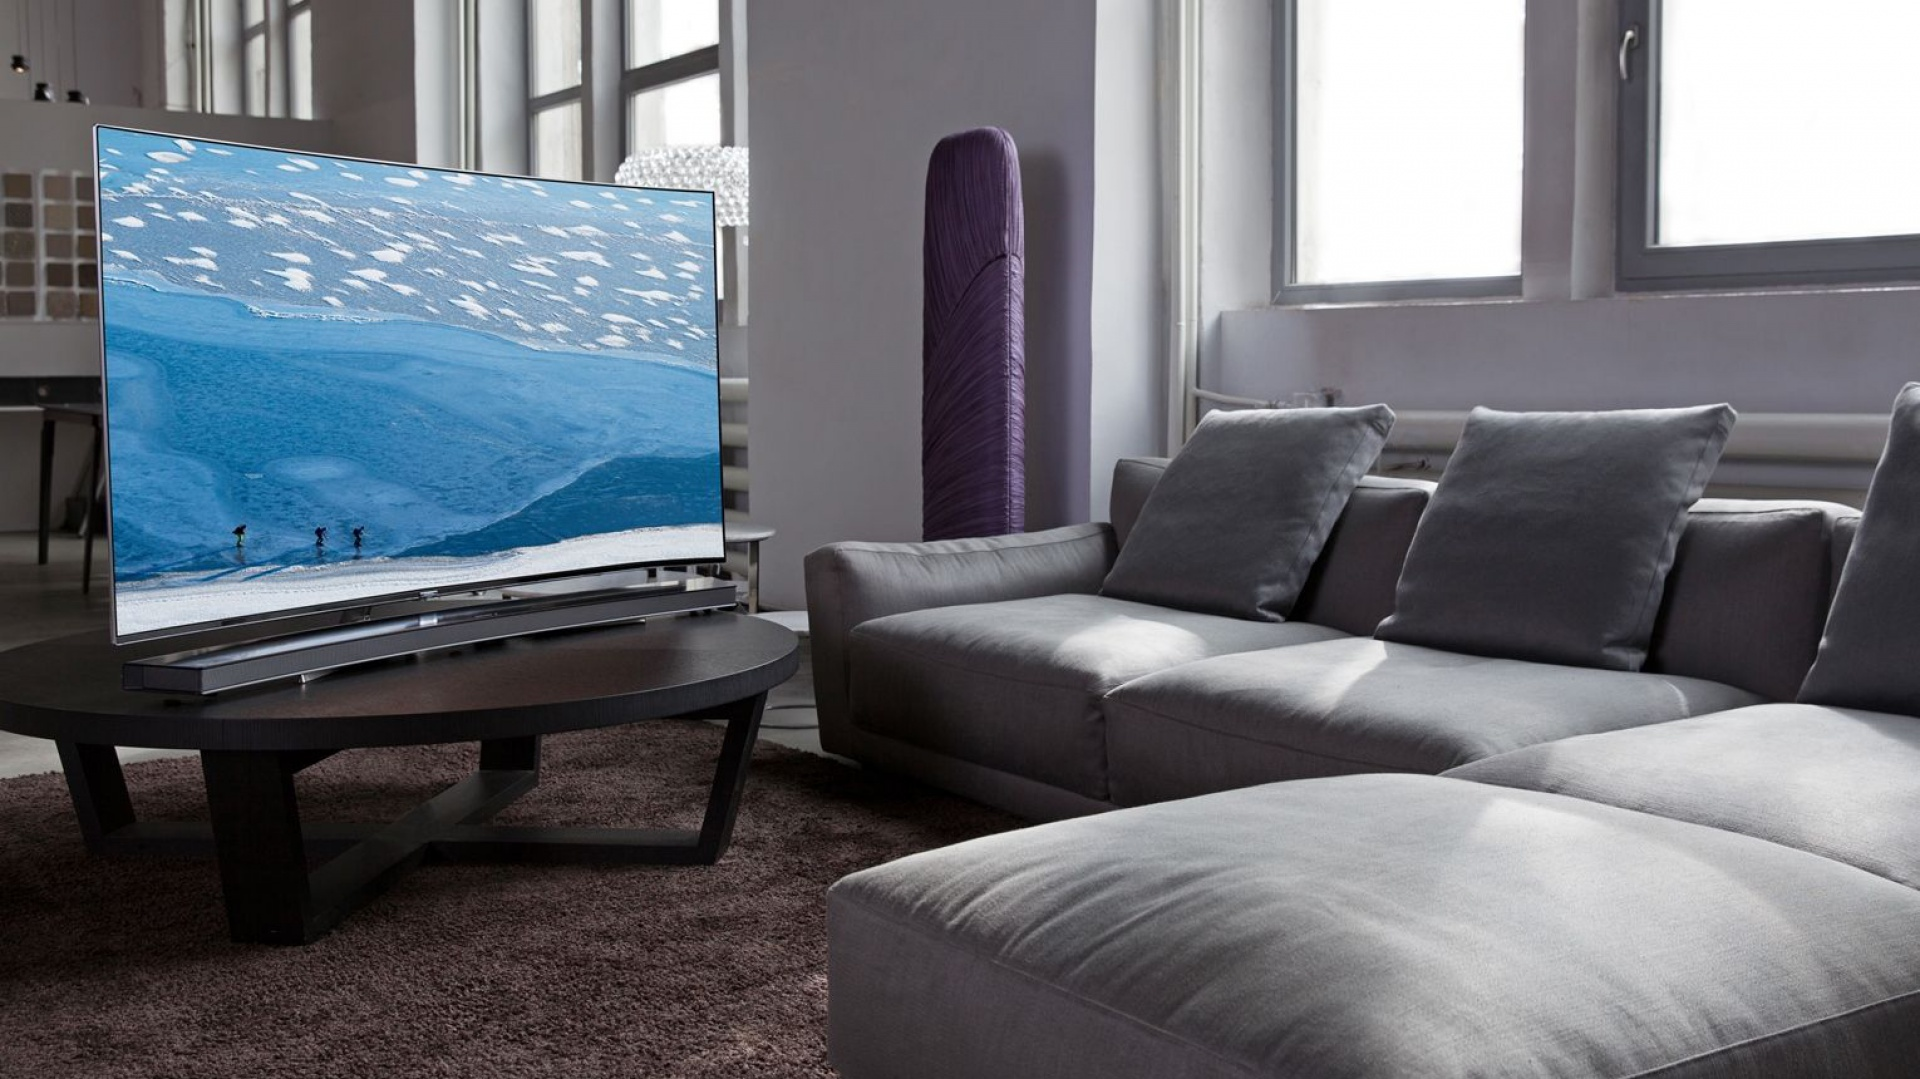 Soundbar z telewizorem Smart-TV KS9000. Fot. Samsung